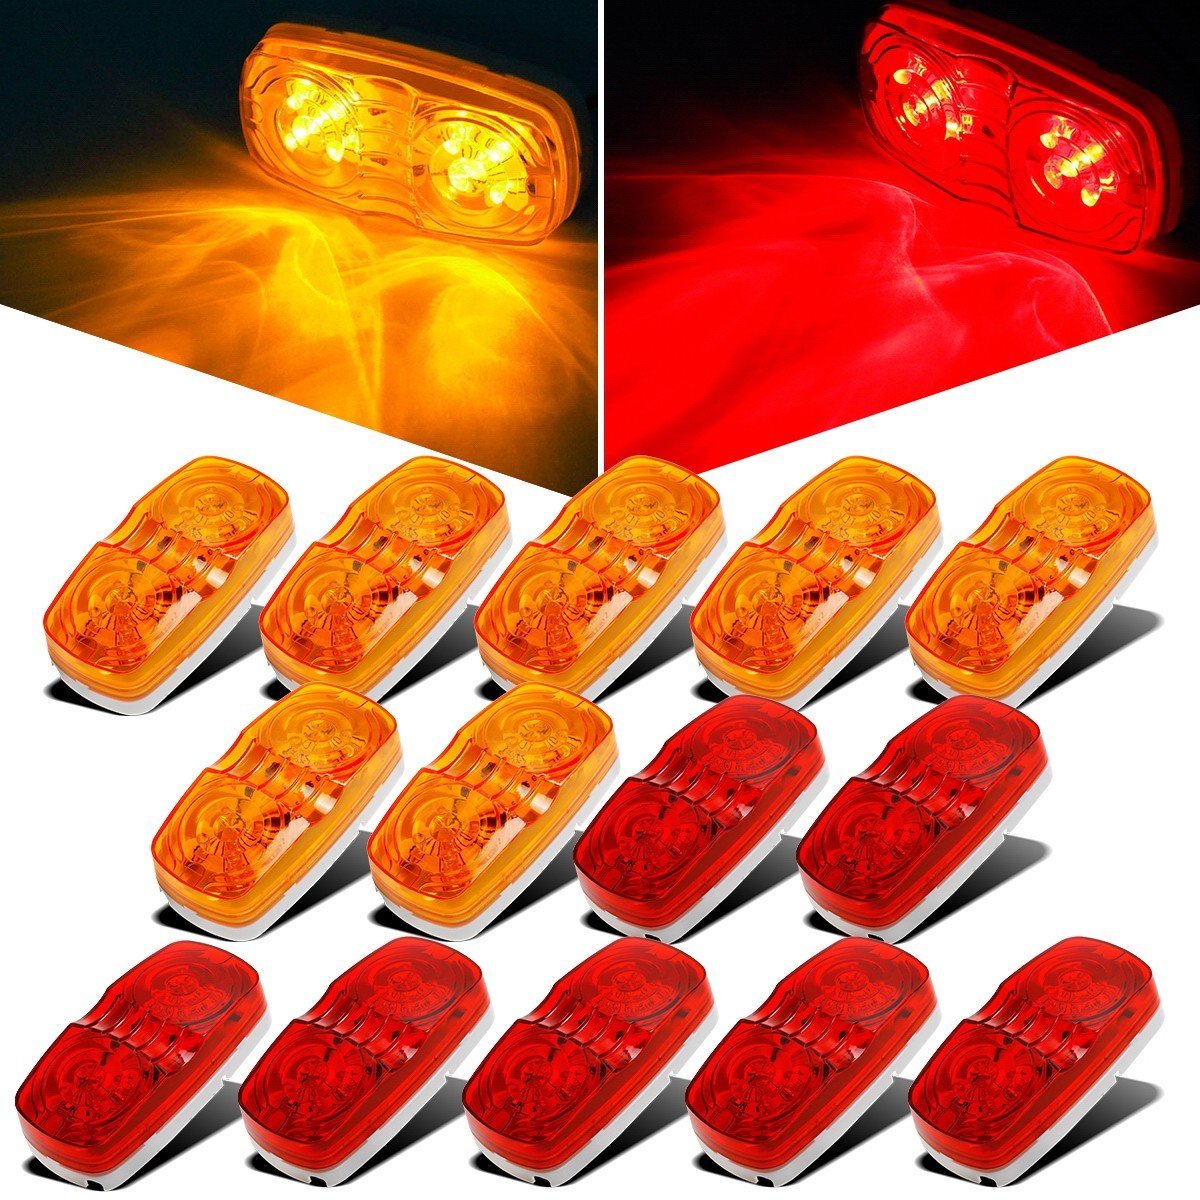 Partsam 14x Trailer Marker LED Light Double Bullseye 10 Diodes Clearance Light Red/Amber, 4x2 Tiger Eye/Double Bubble 12V Rectangular LED Side Marker Light Indicators Surface Mount RV Camper Trucks by Partsam